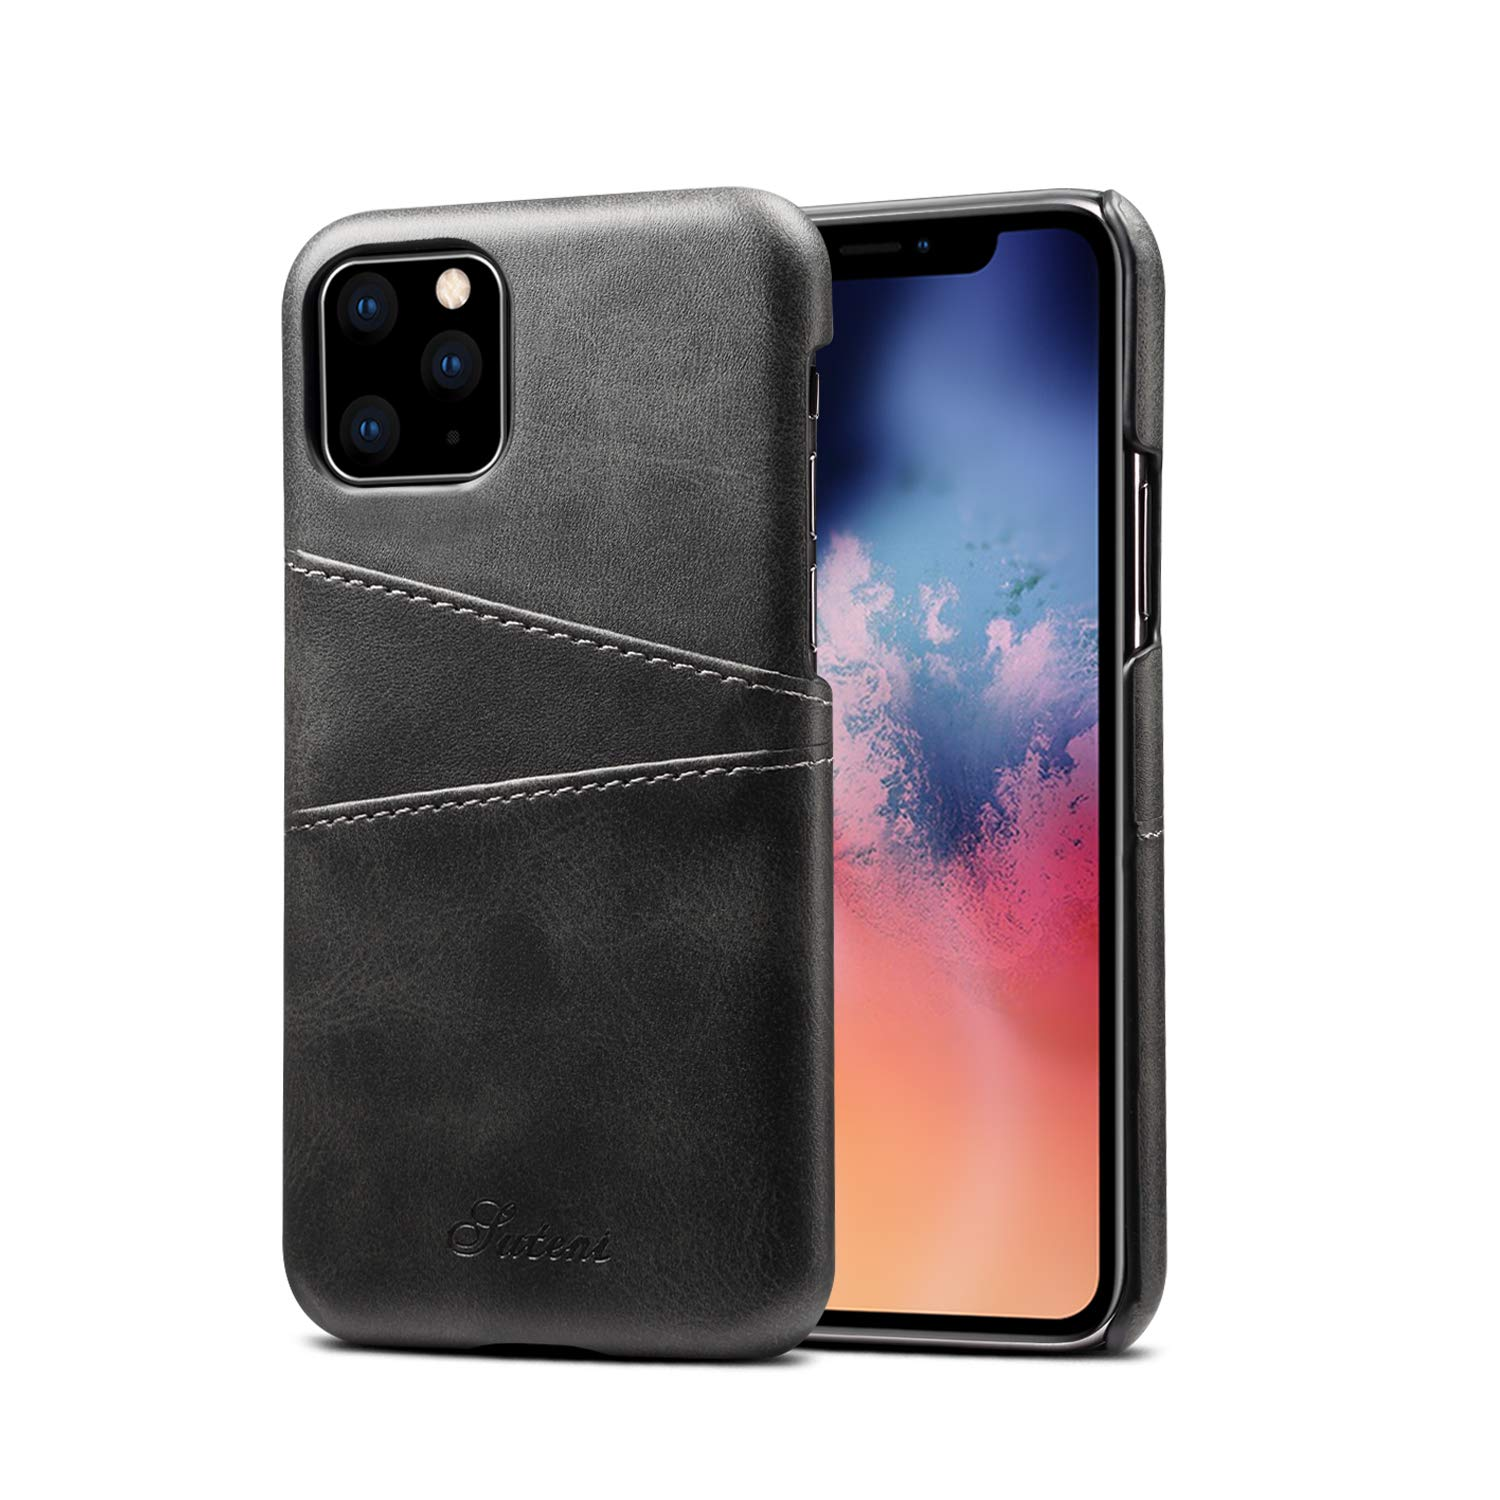 iPhone 11 Pro Max Wallet Case,KelaSip Slim PU Leather Back Protective Case Cover with 2 Credit Card Holder,Black,for iPhone 11 Pro Max Case